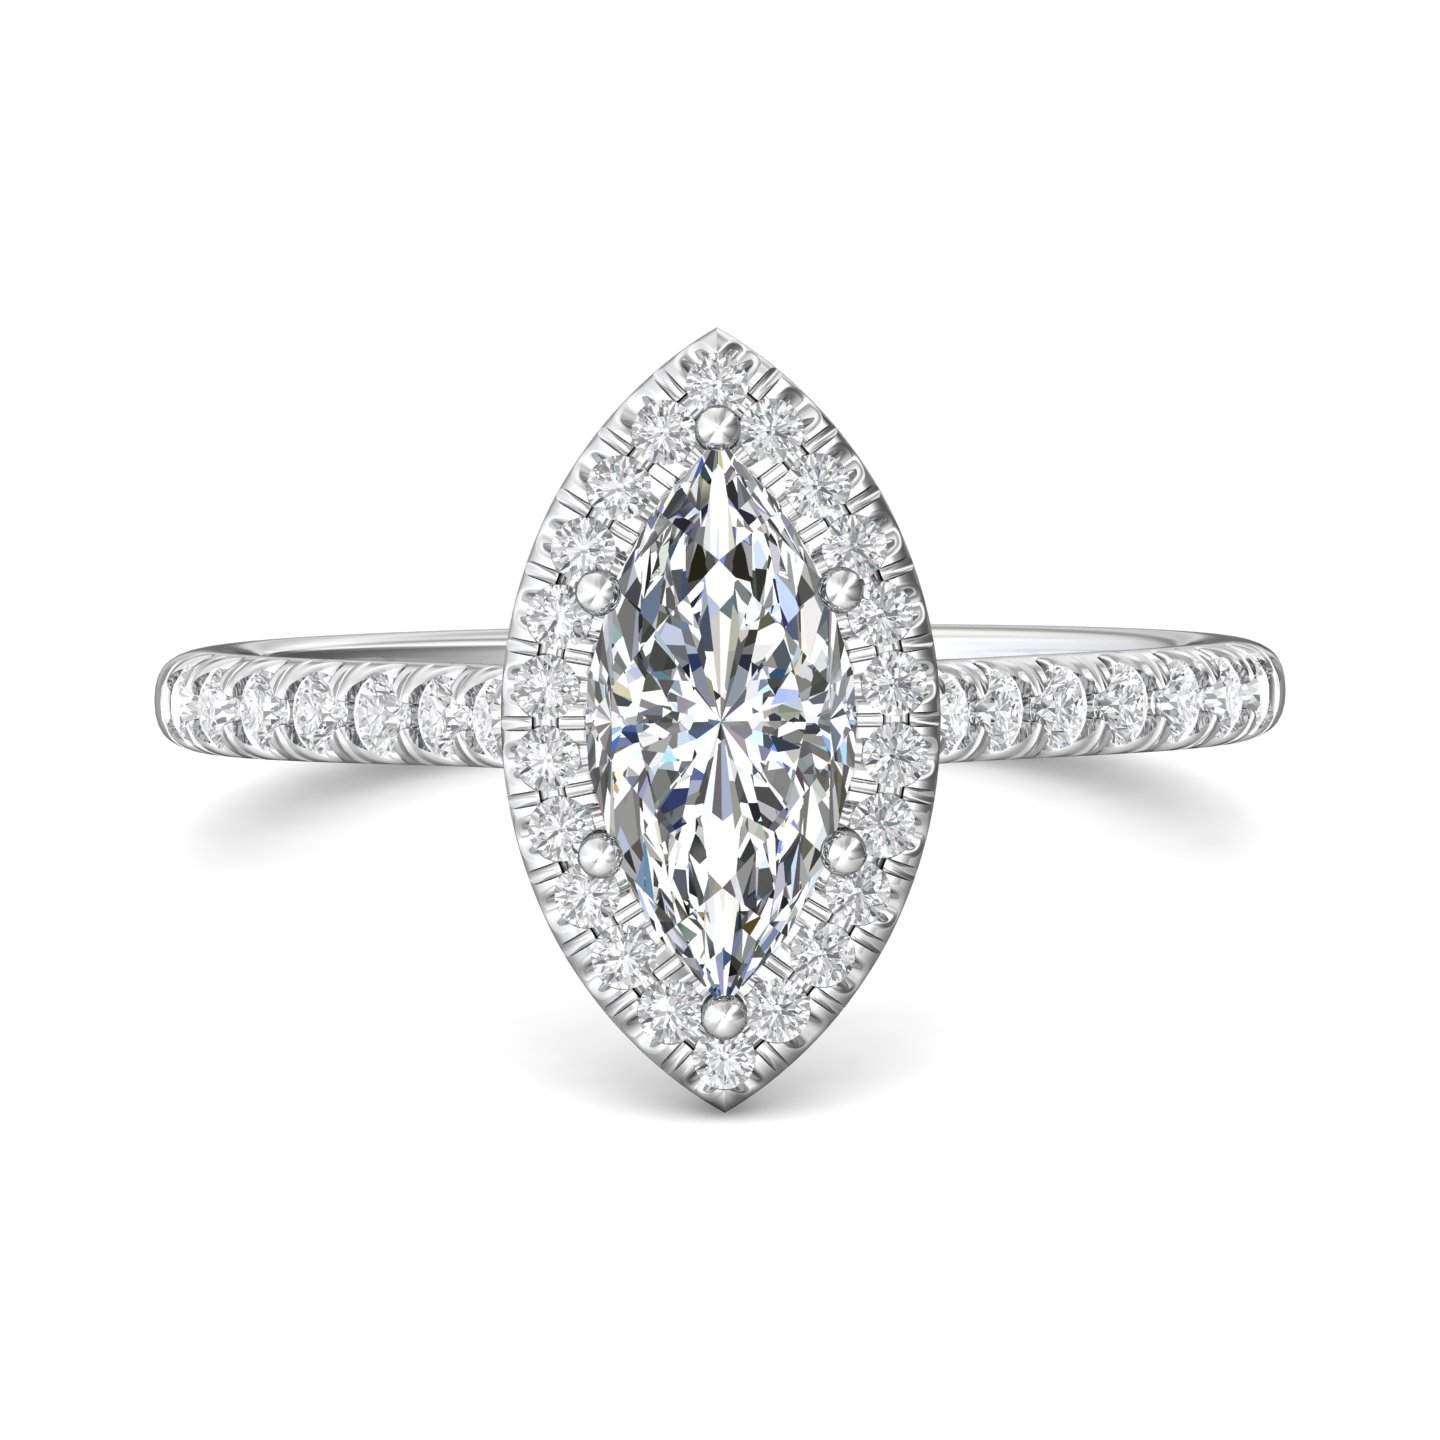 14K White Gold FlyerFit Micropave Halo Engagement Ring Grogan Jewelers Florence, AL